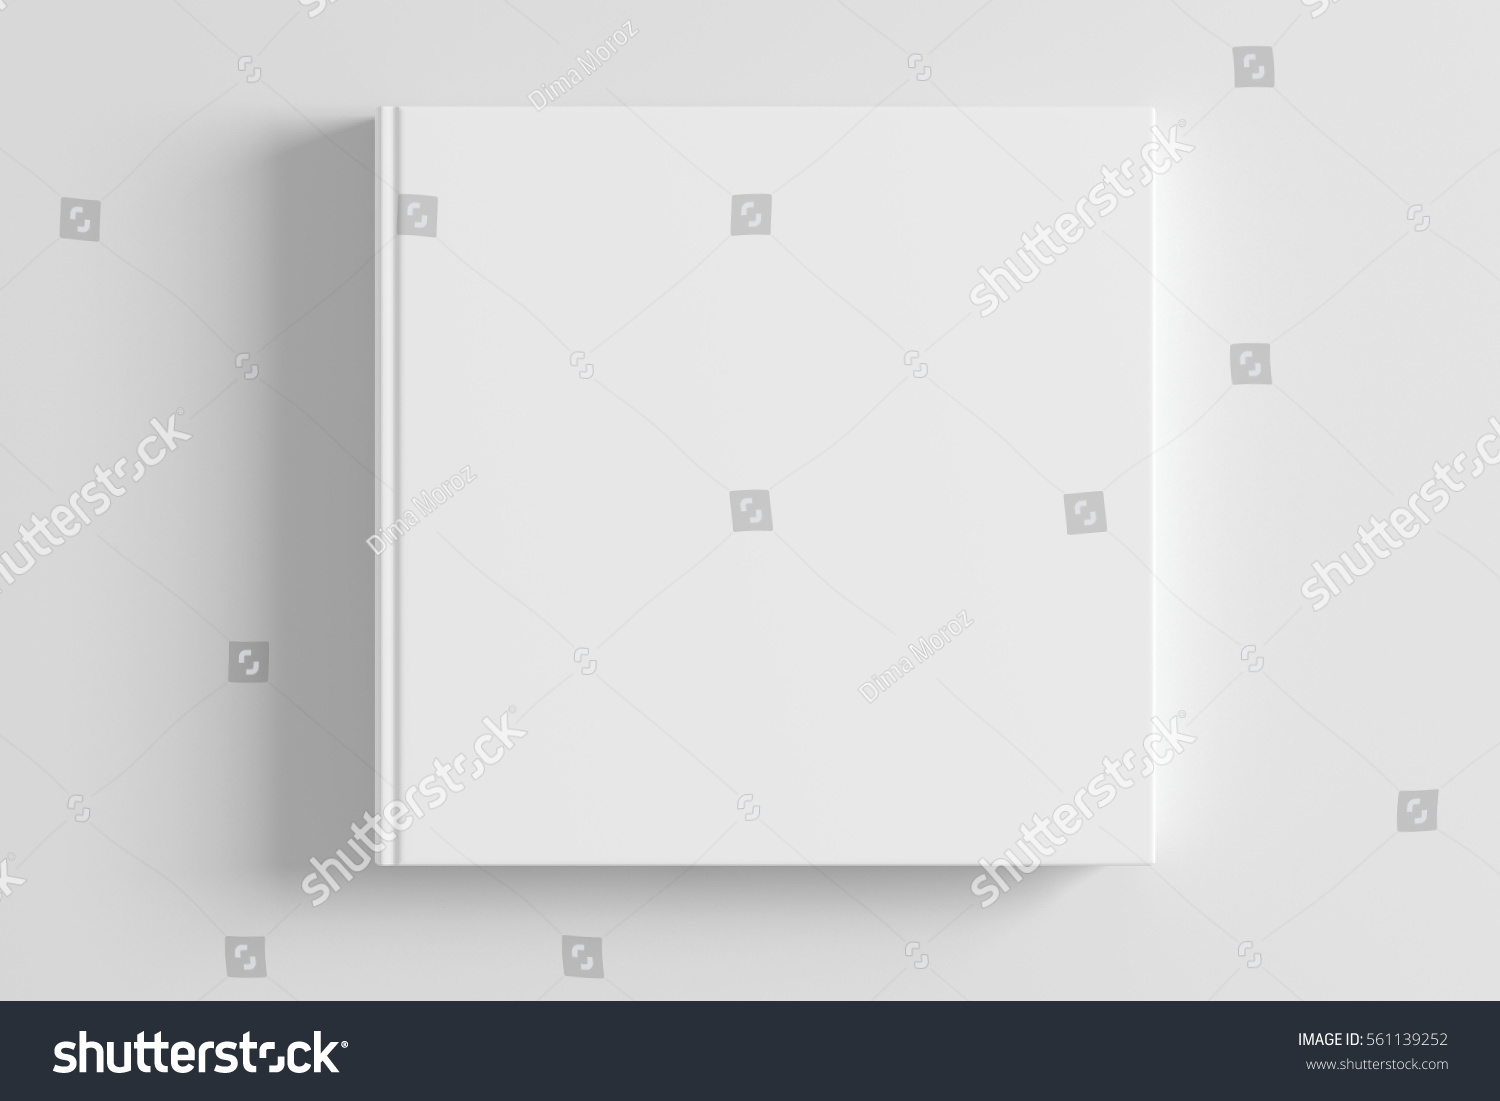 Book Cover White Background : Blank white book cover on stock illustration